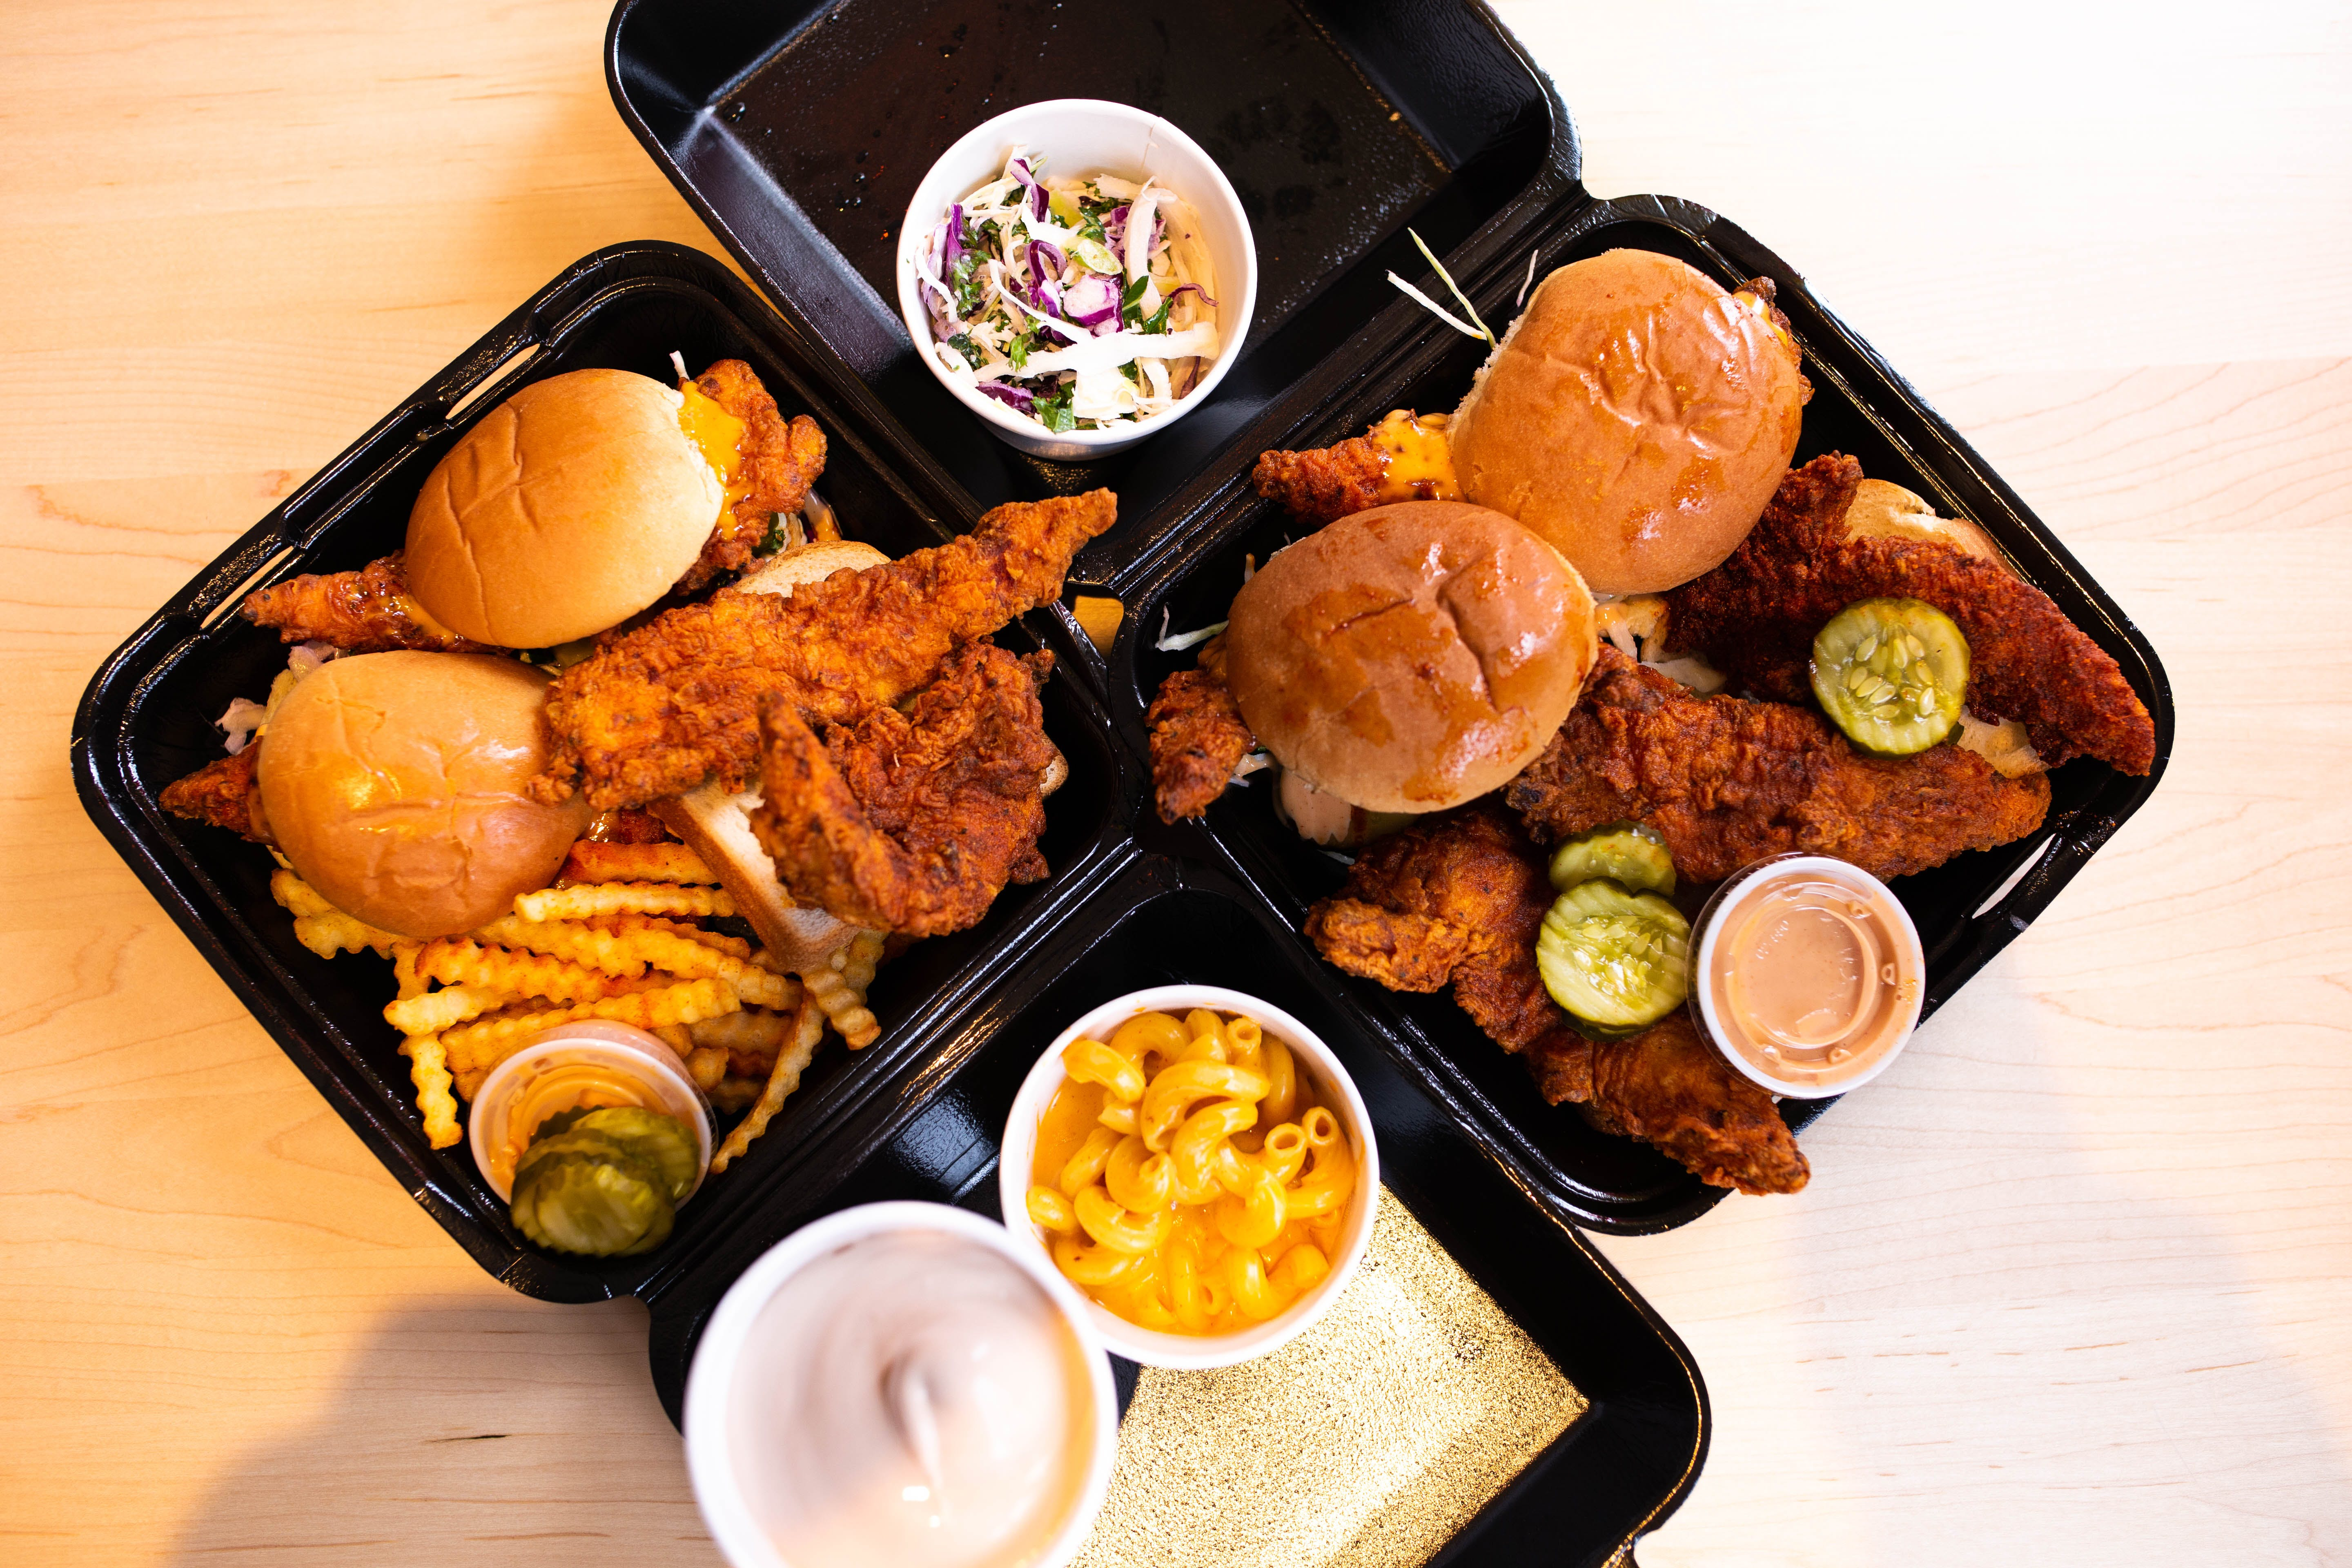 Top-down of food from Dave's Hot Chicken in Parkdale, Toronto, Canada.